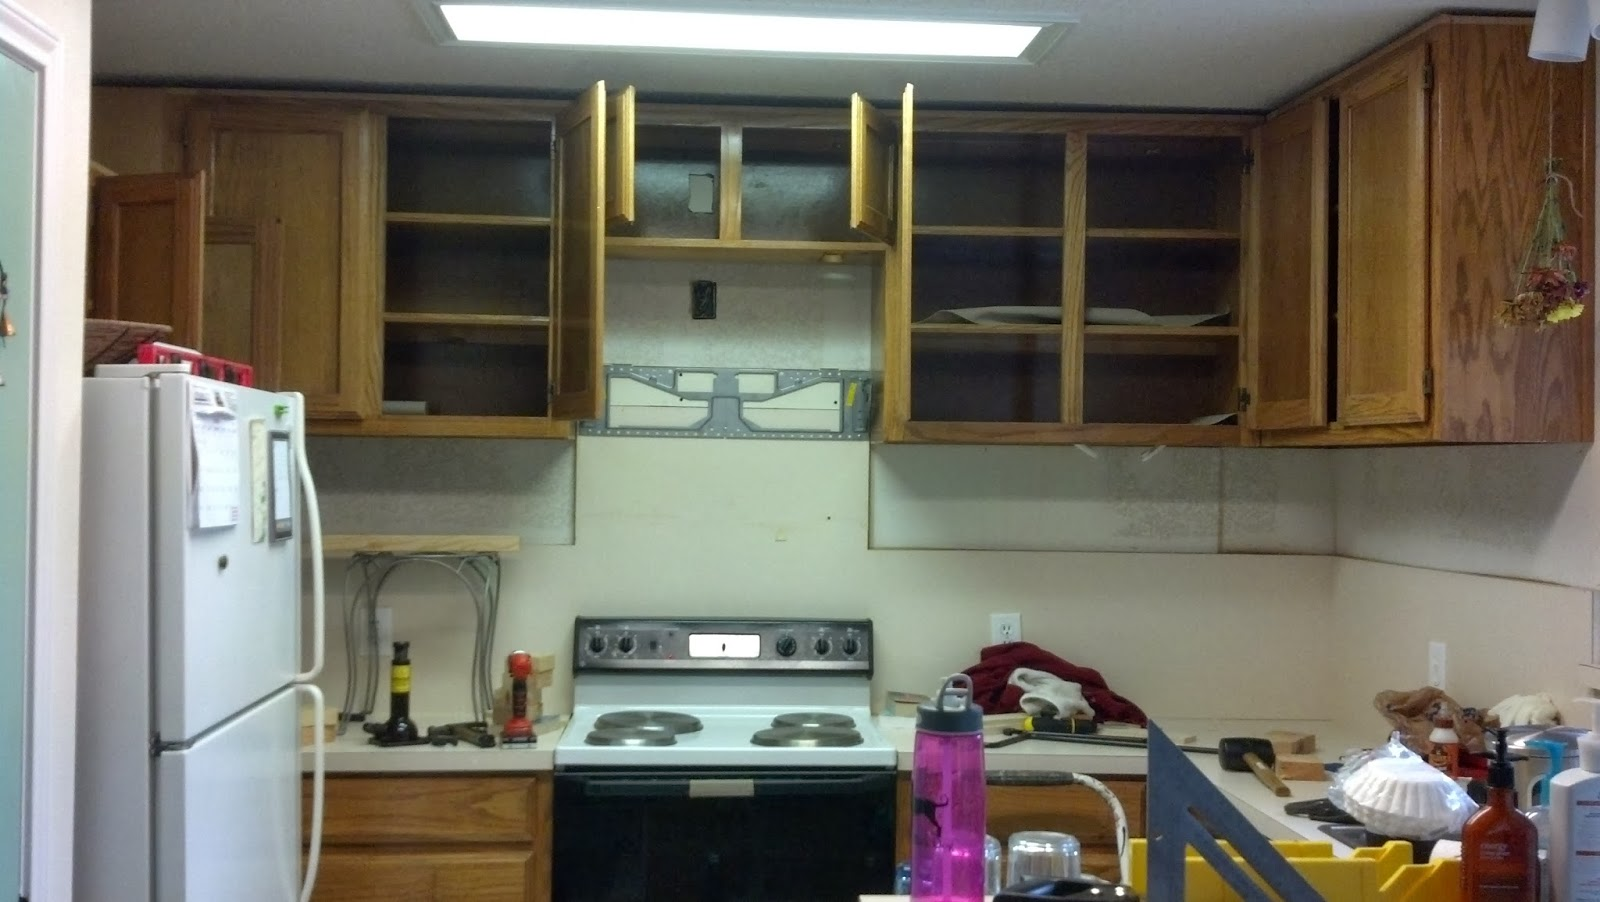 Fix Lovely: How to raise your kitchen cabinets